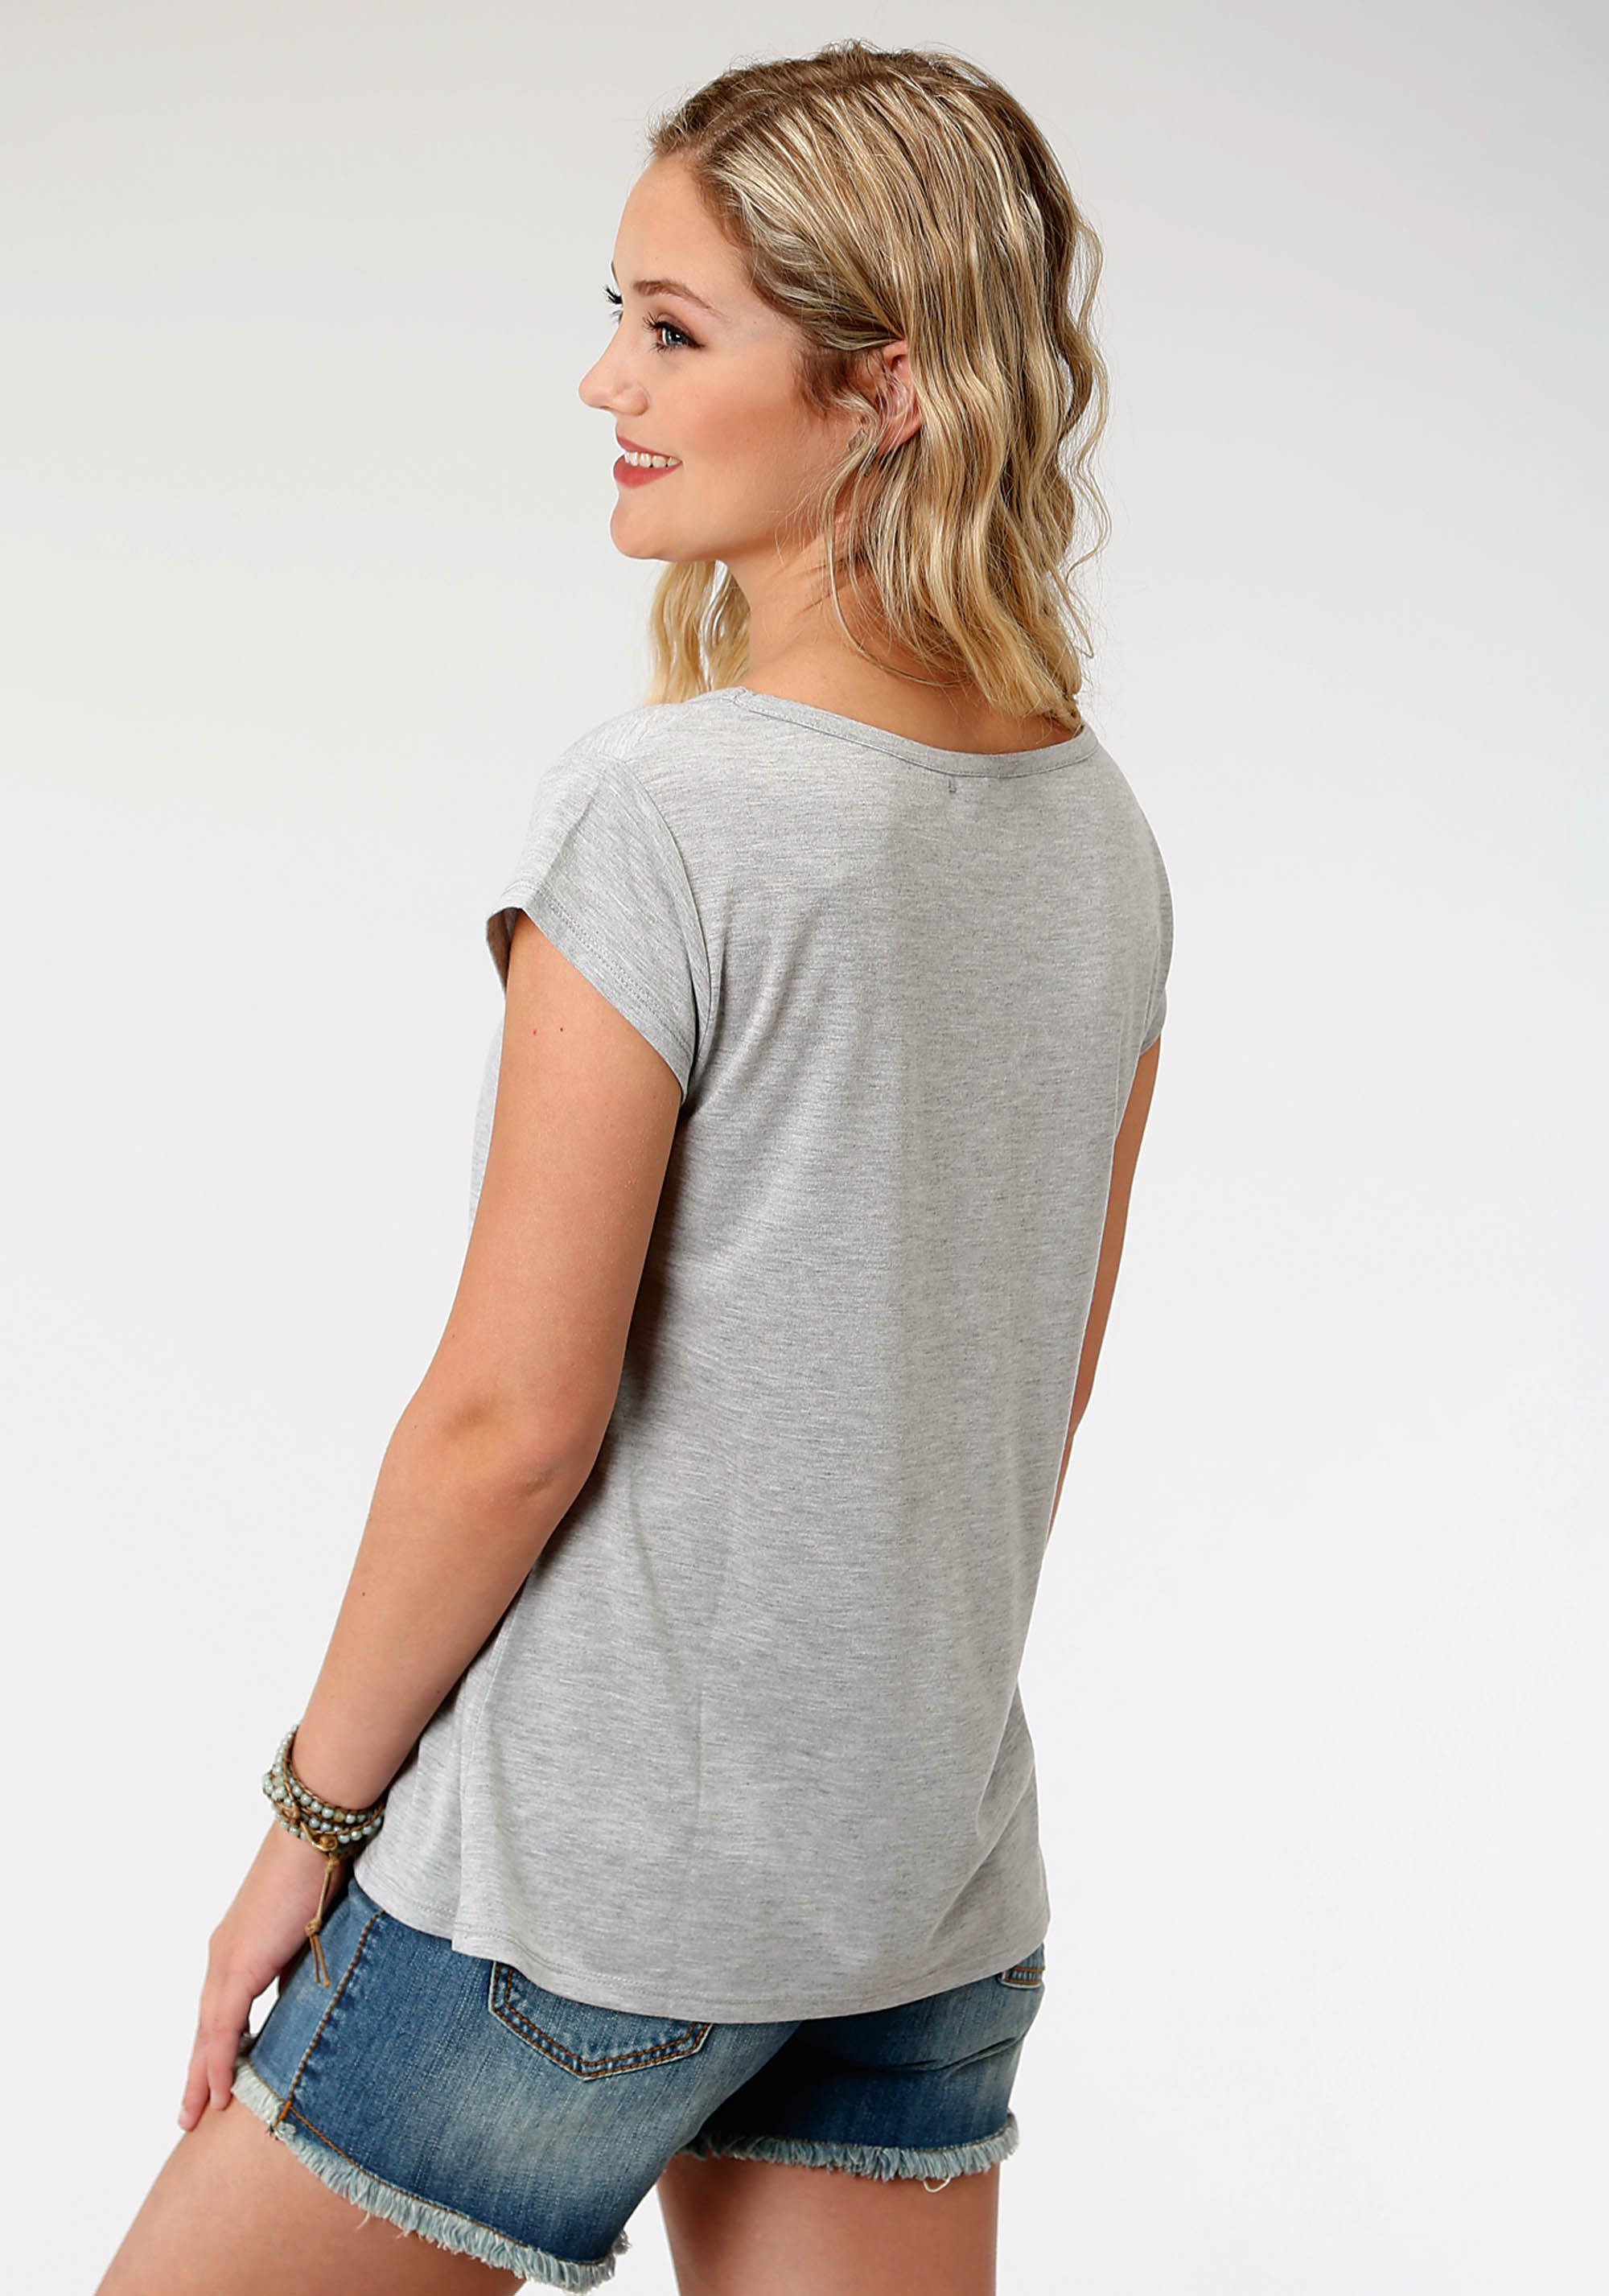 ROPER WOMENS GREY 8173 P/R JERSEY CAP SLV TEE FIVE STAR COLLECTION- SUMMER II SHORT SLEEVE